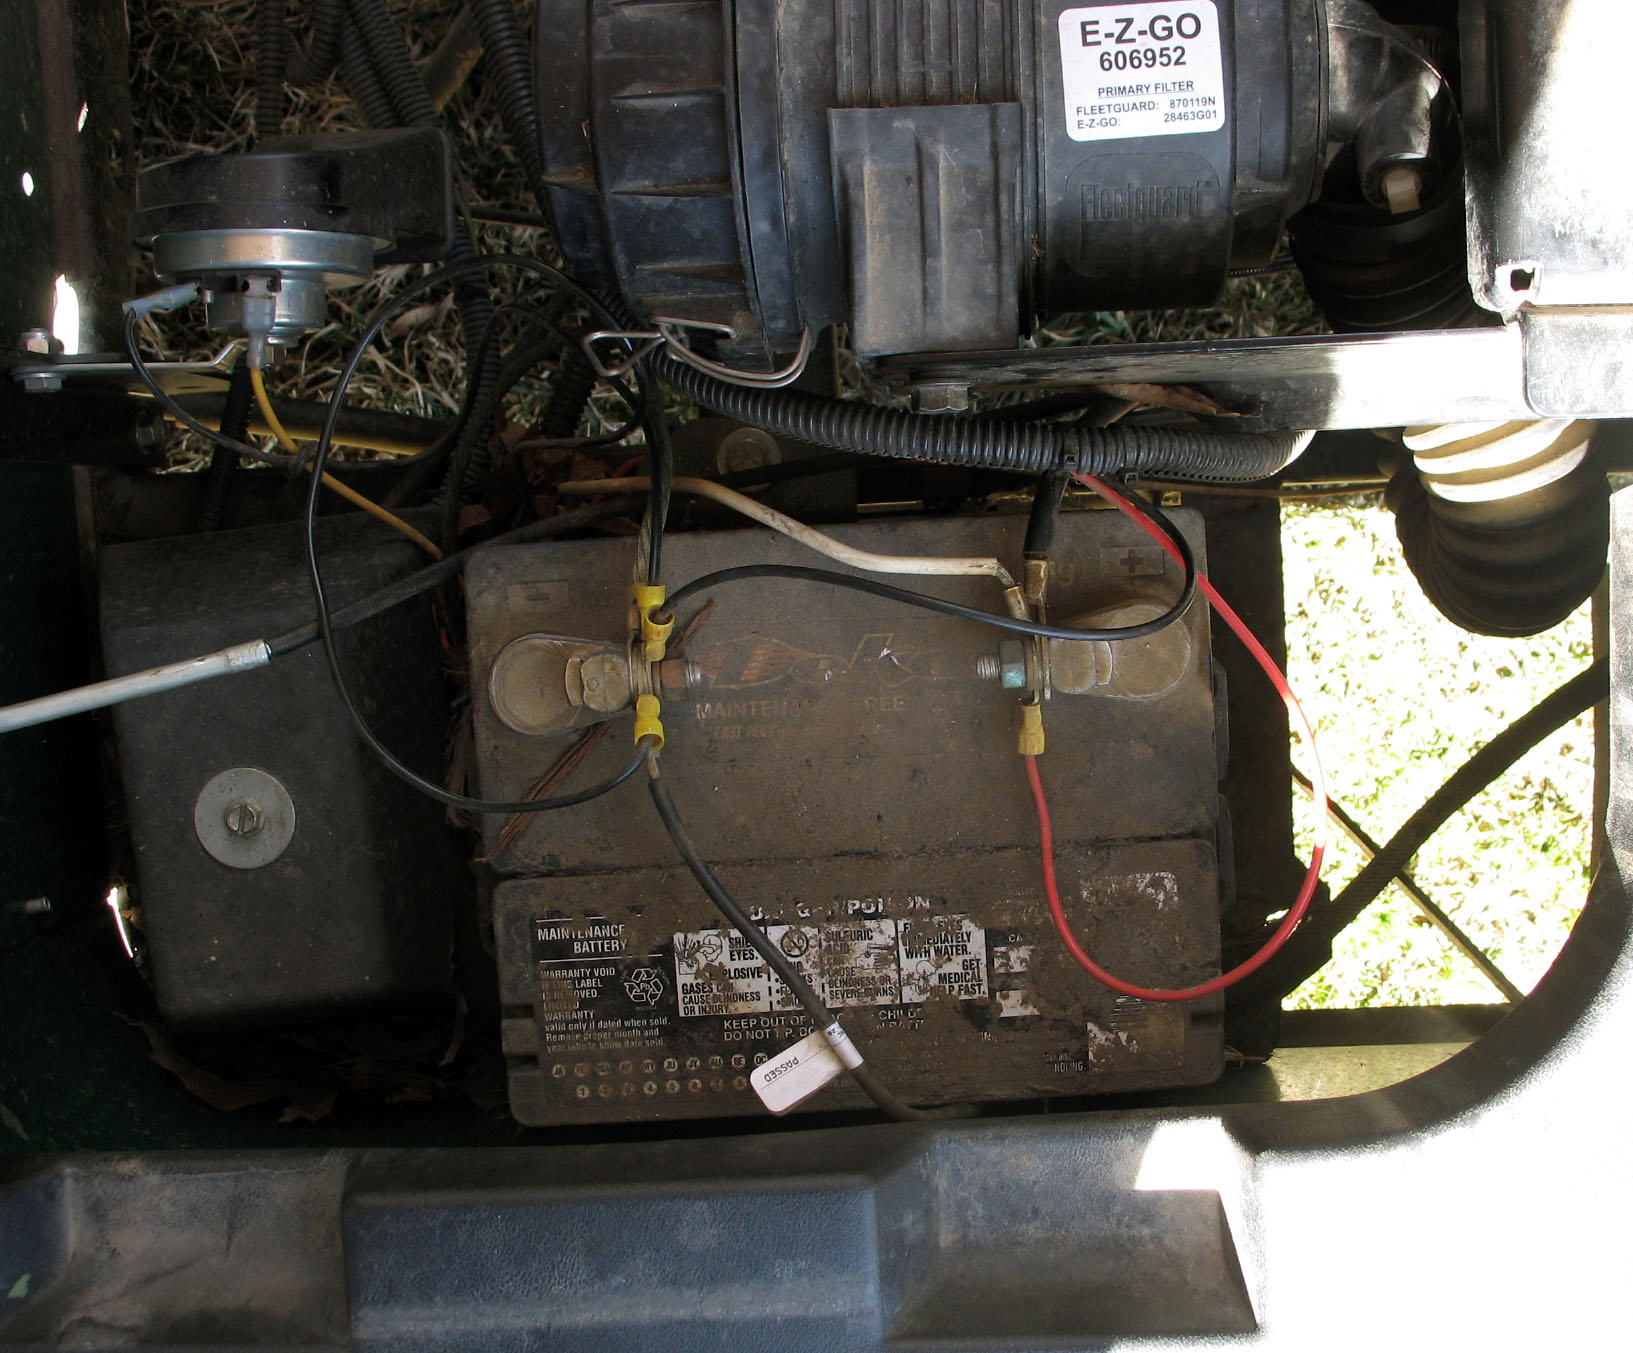 ezgo battery wiring diagram model t ford coil golf cart service checklist - talkgolfcarcatalog.com blog